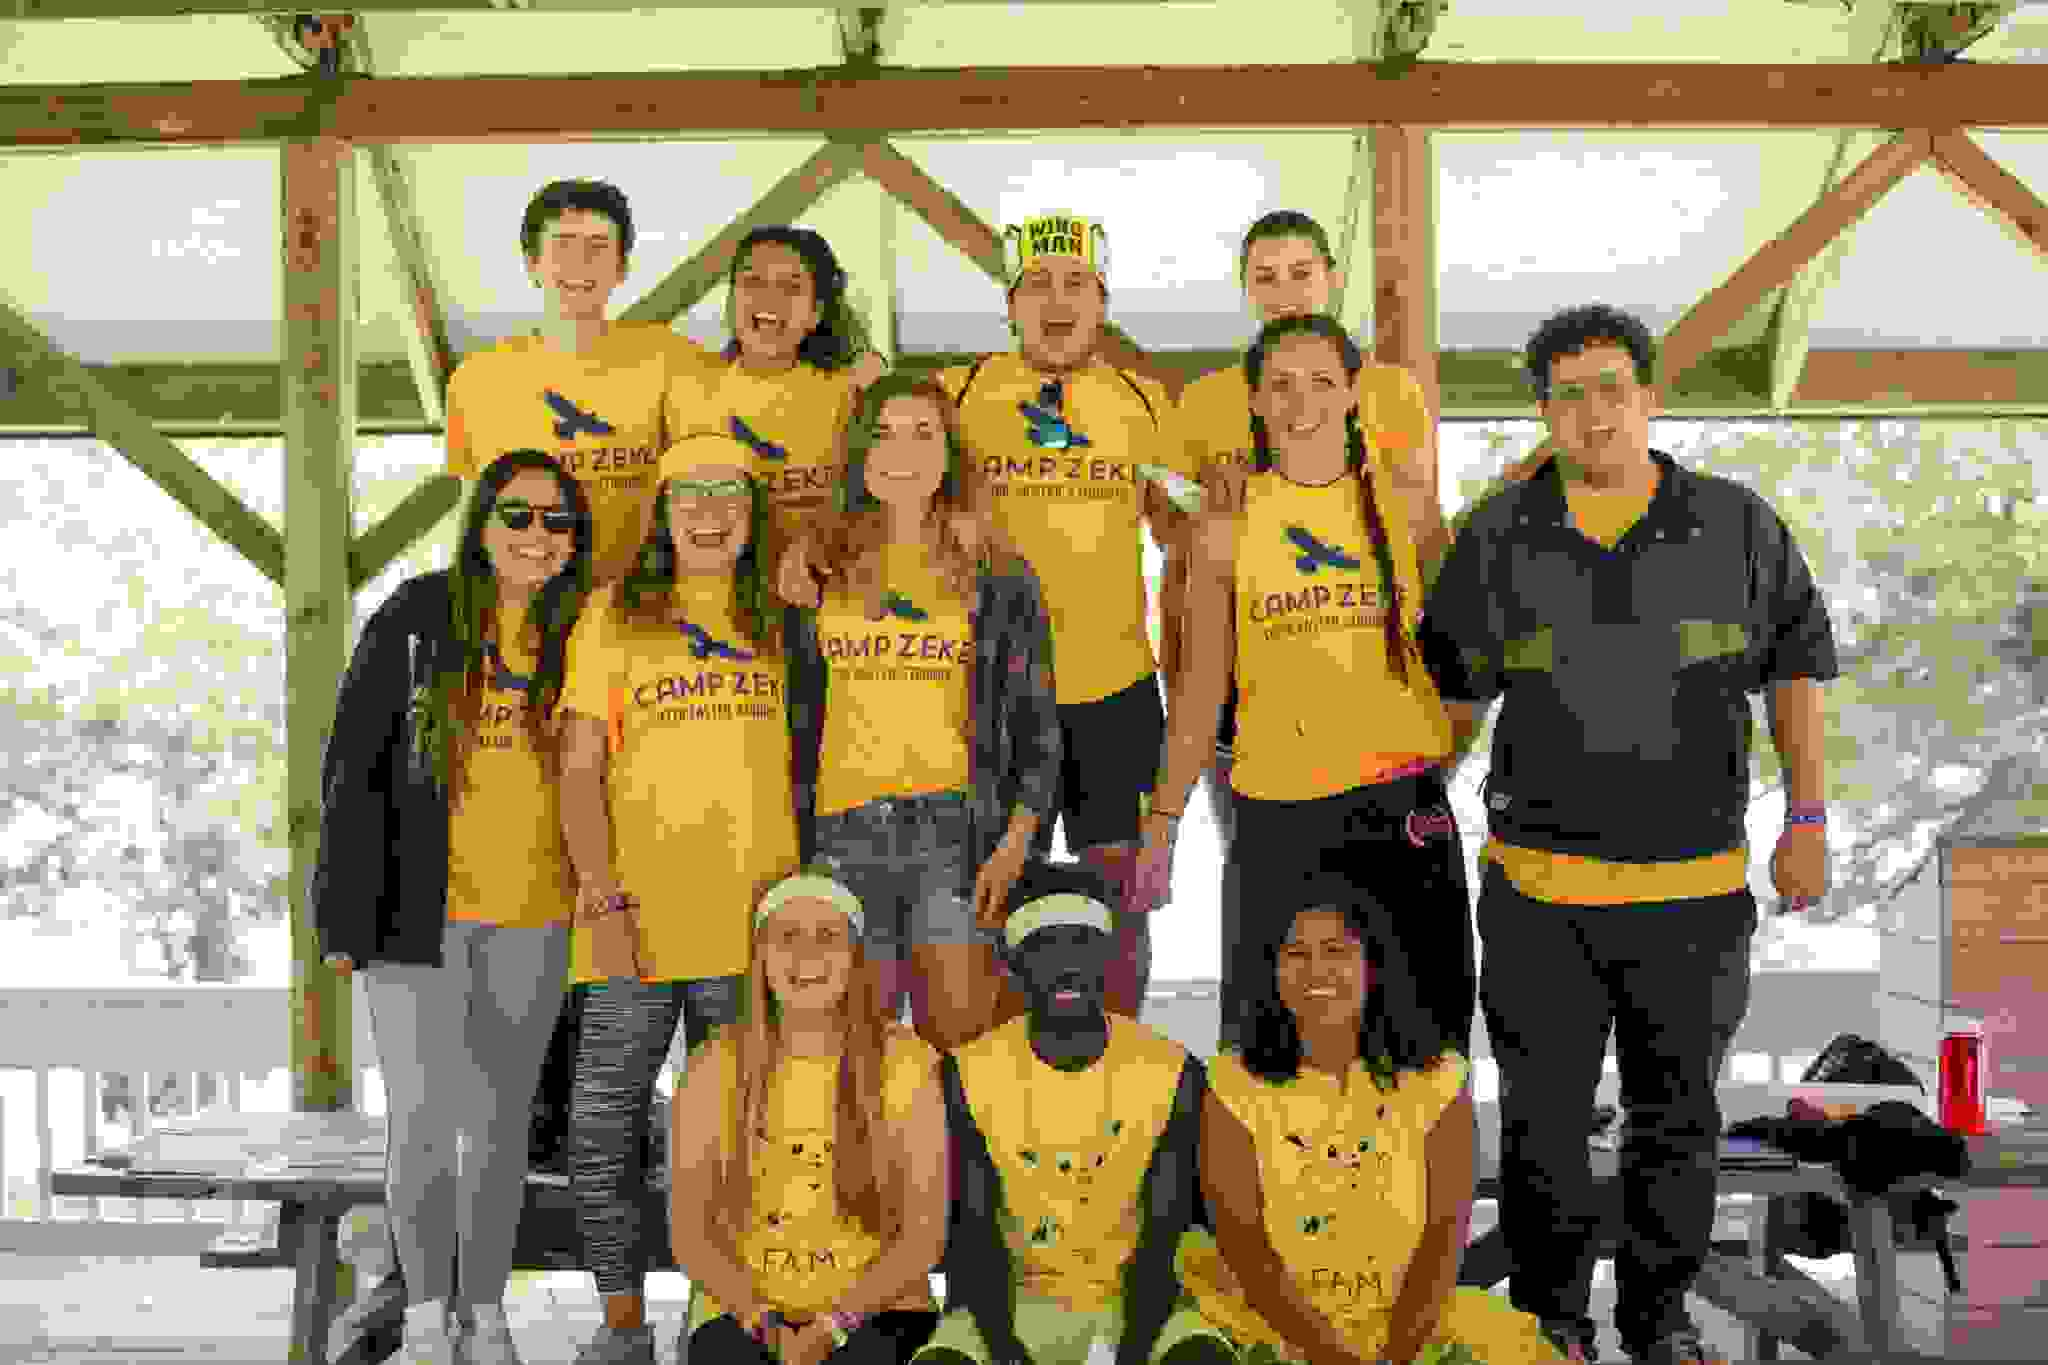 Group of Camp Zeke staff all in yellow camp shirts